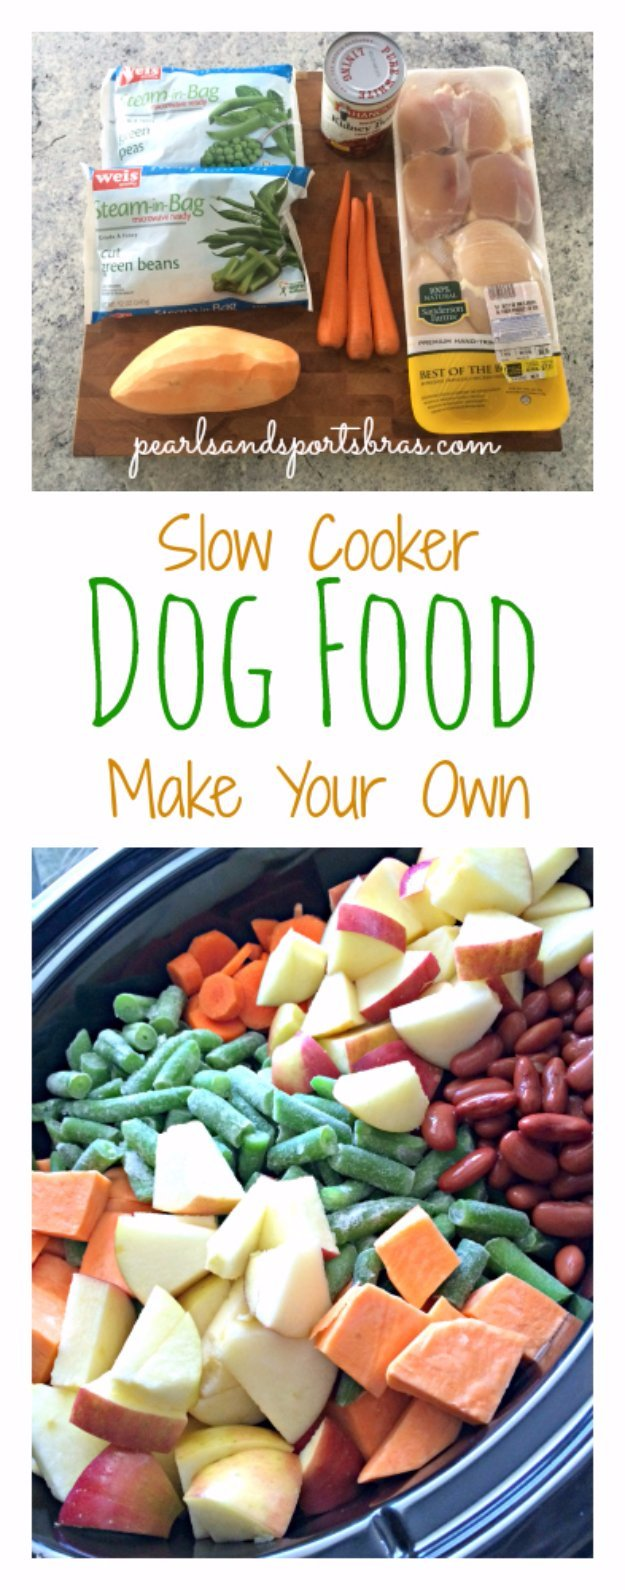 35 Homemade Pet Recipes For Dogs and Cats